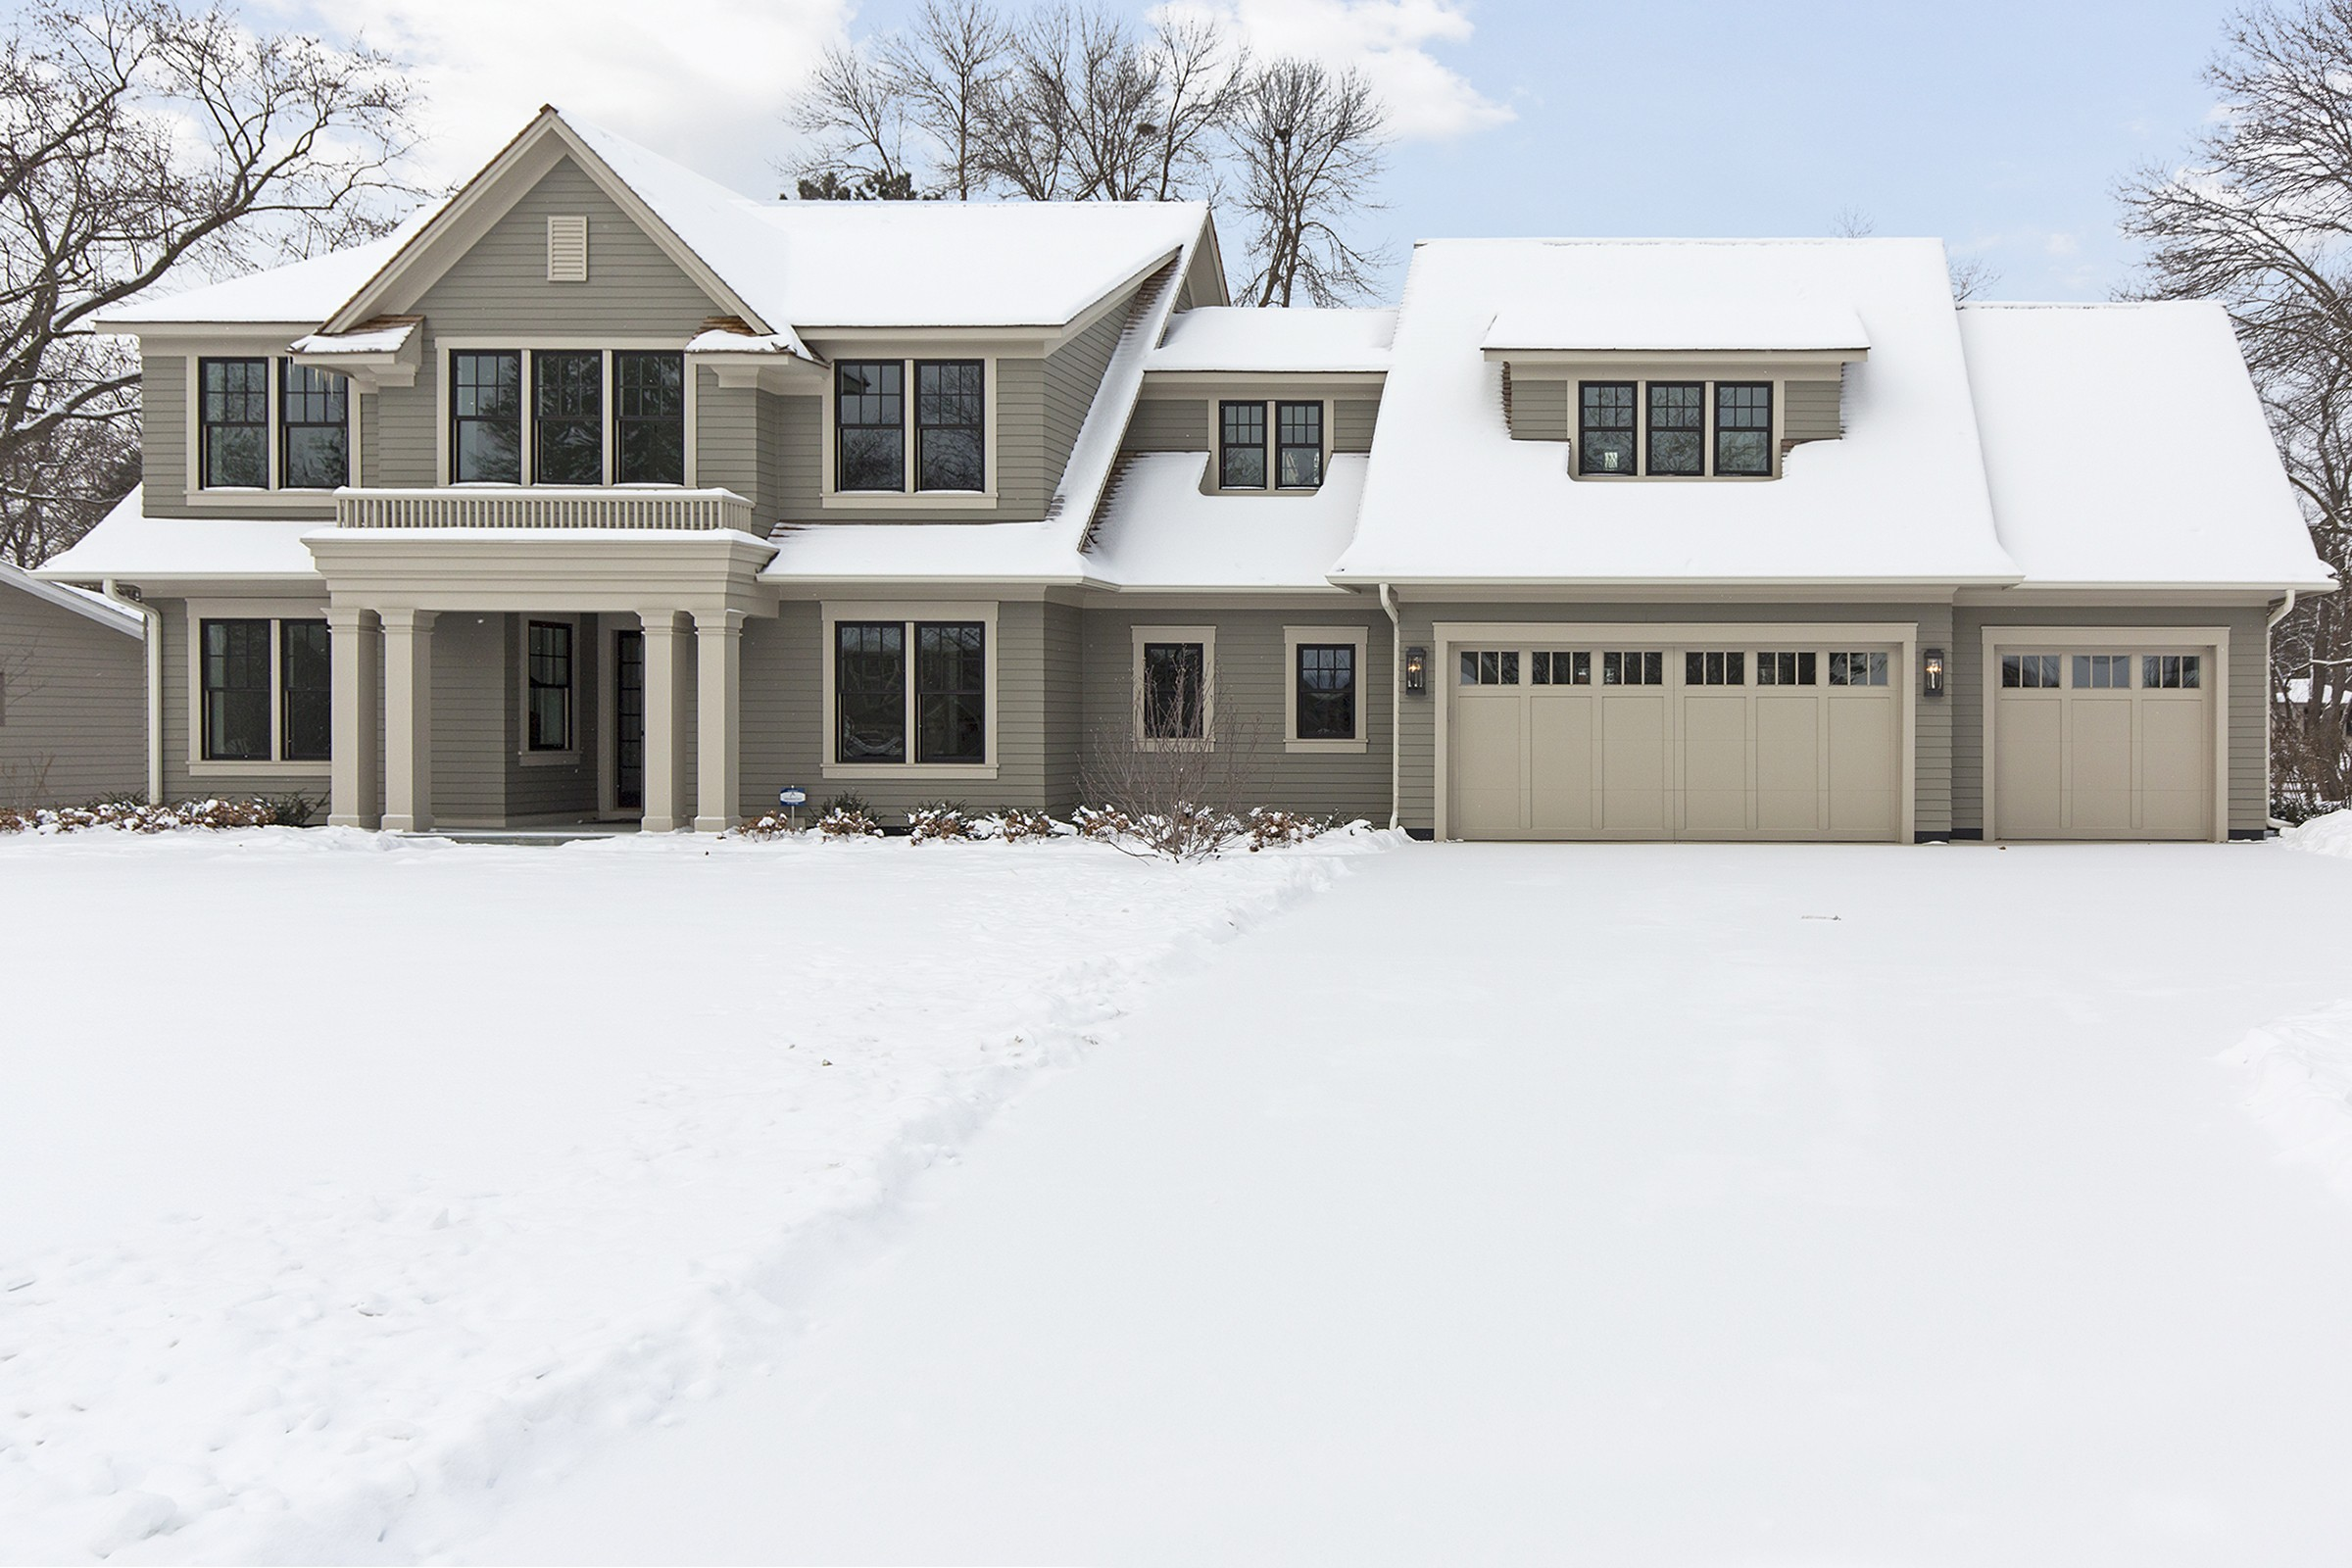 Single Family Home for Sale at 5312 Chantrey Road Edina, Minnesota, 55436 United States